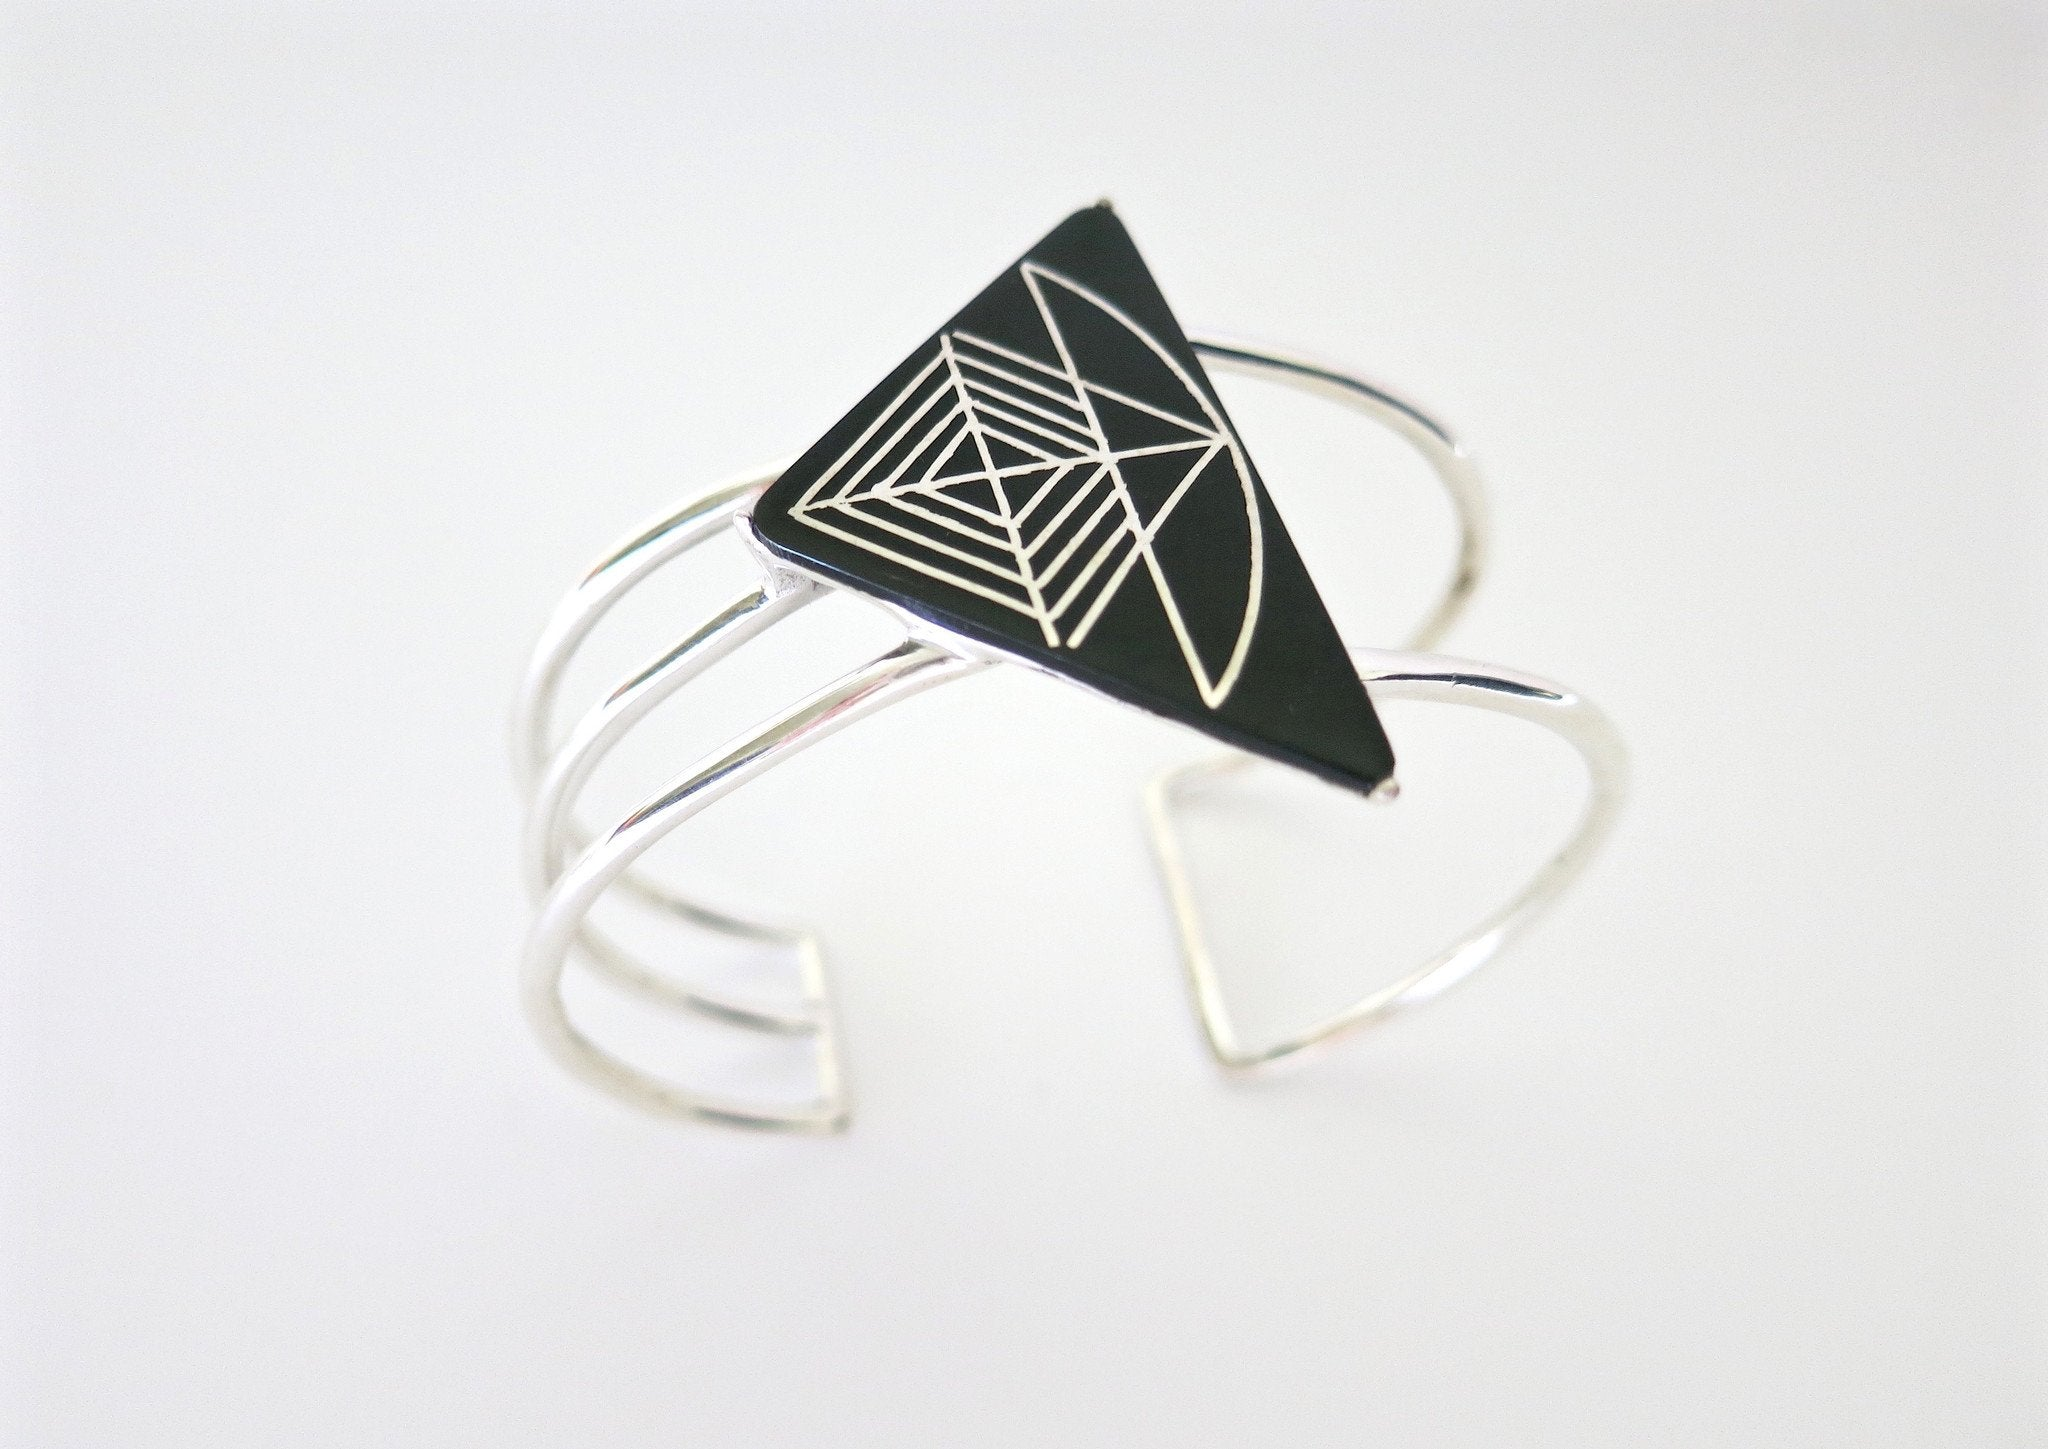 Dramatic triangular Bidri cuff - Craft Stories Handmade, contemporary, personal and home accessories. Designed in California. Handcrafted in India. Traditional craftsmanship meets modern aesthetics. Sustainable design ethos, fair trade, conscious, artisanal jewelry and home decor. Objects with a story. Unique and on-trend.